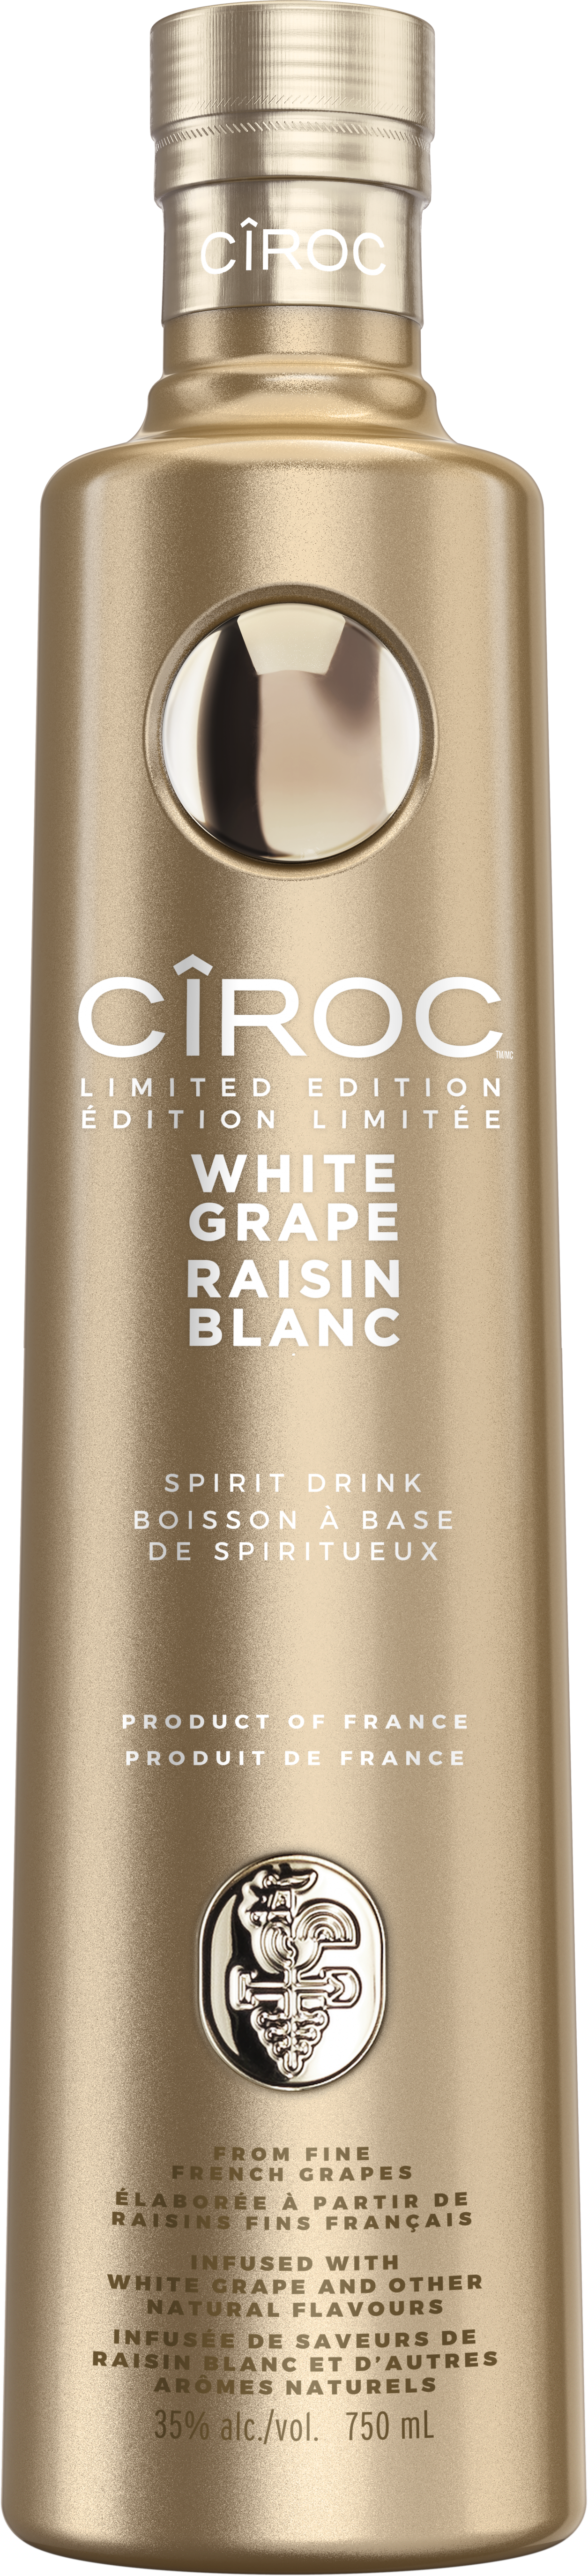 CIROC_White Grape_Bottle_CAN